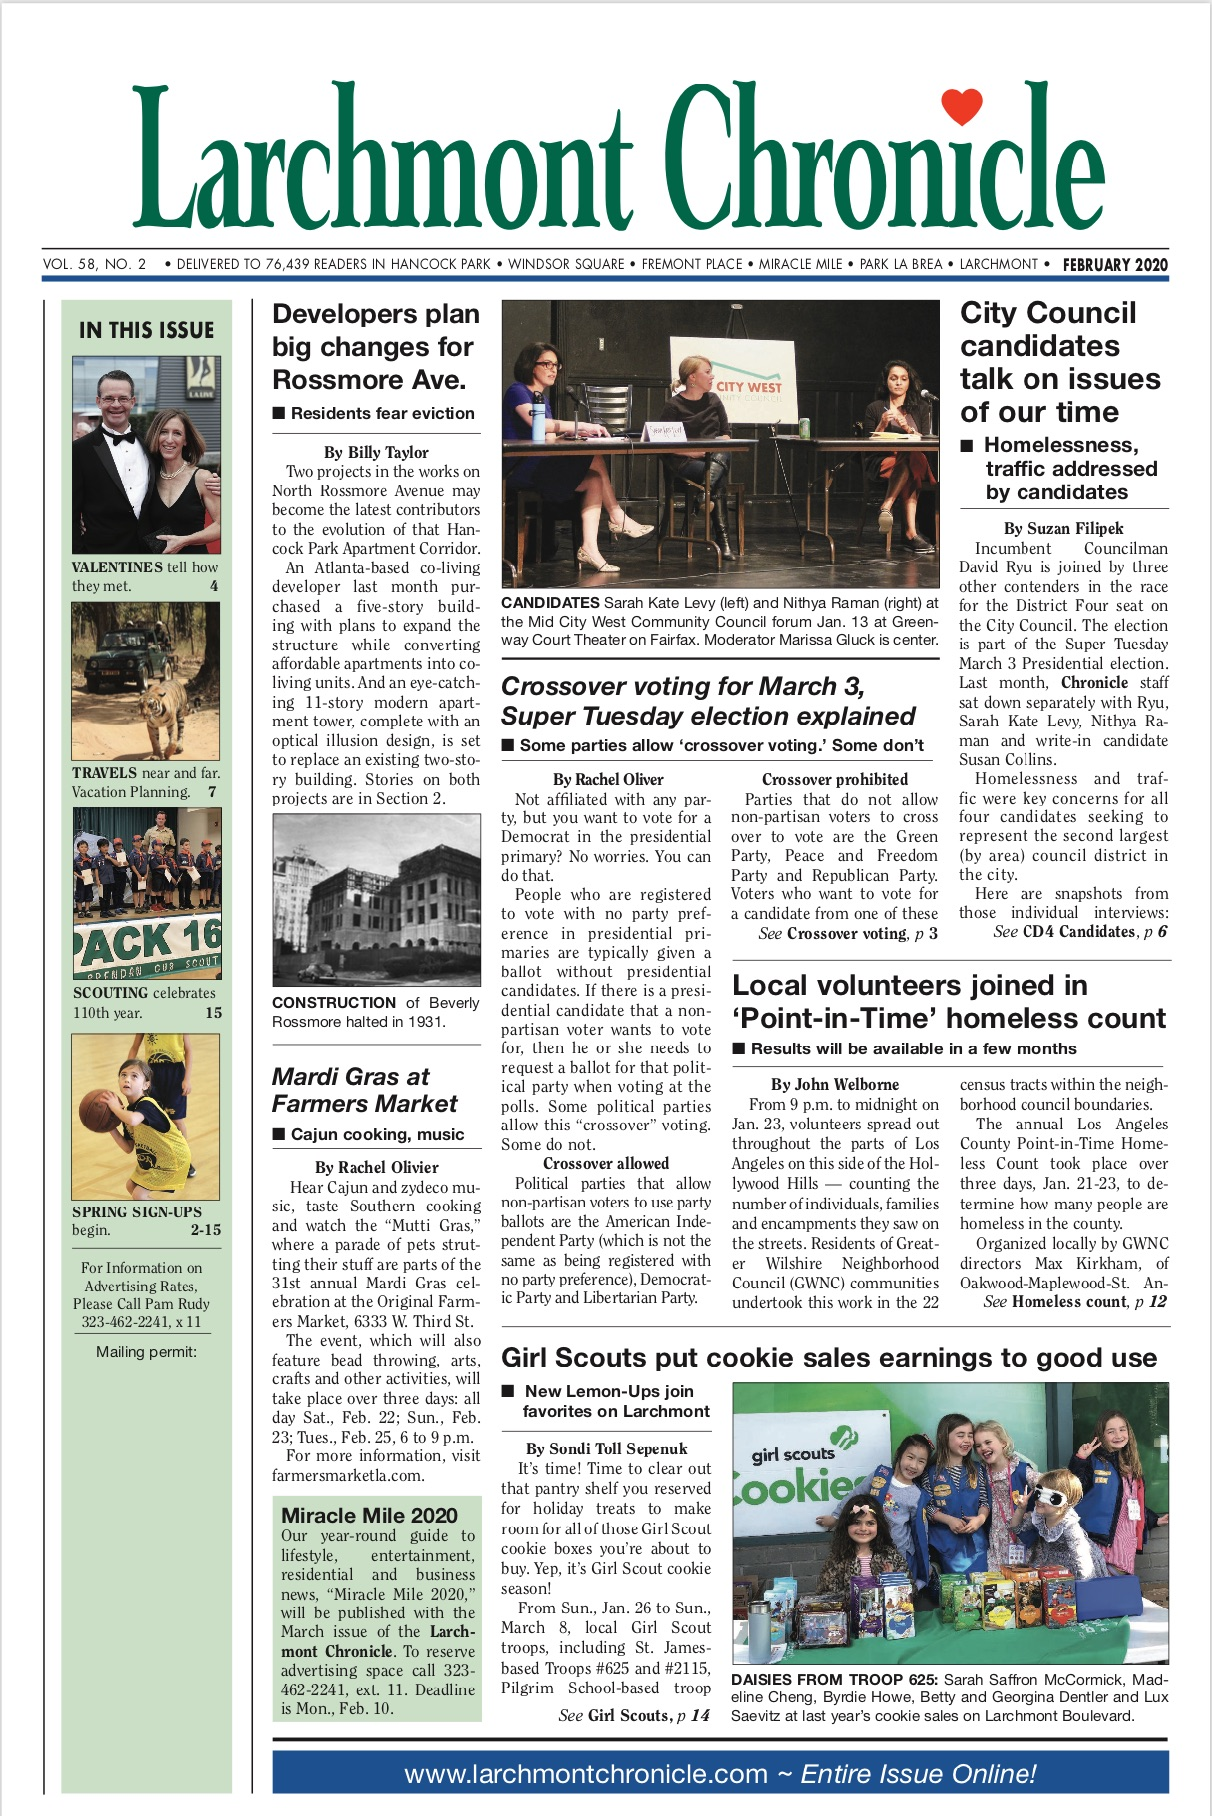 Larchmont Chronicle February 2020 full issue